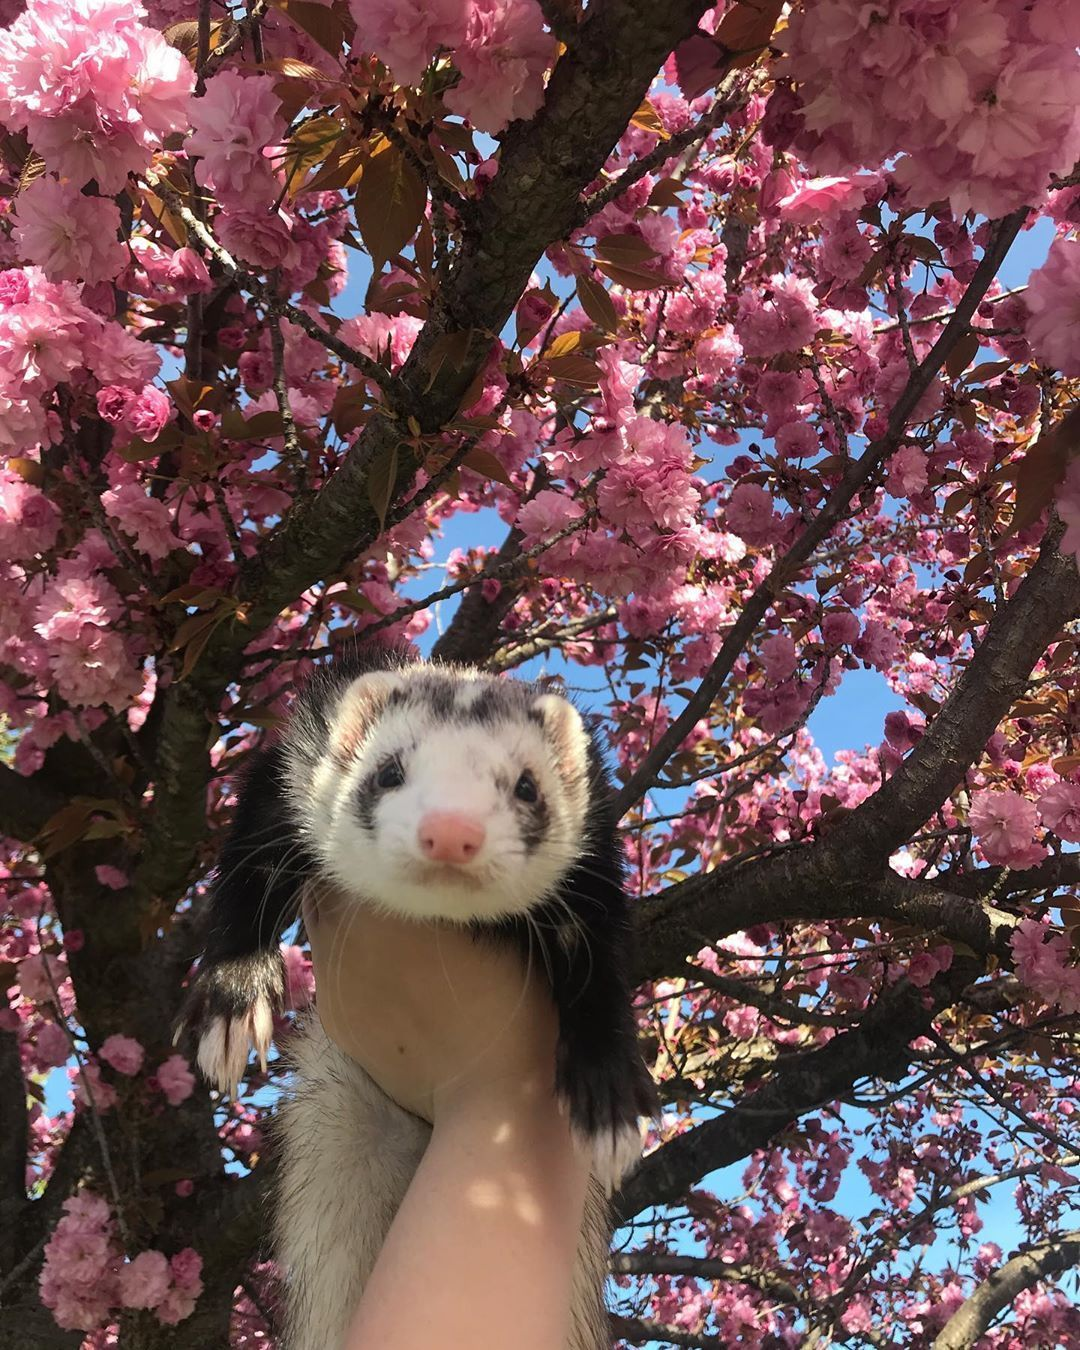 Racer Has That Pink Flower Aesthetic Cute Ferrets Animals Beautiful Cute Animals